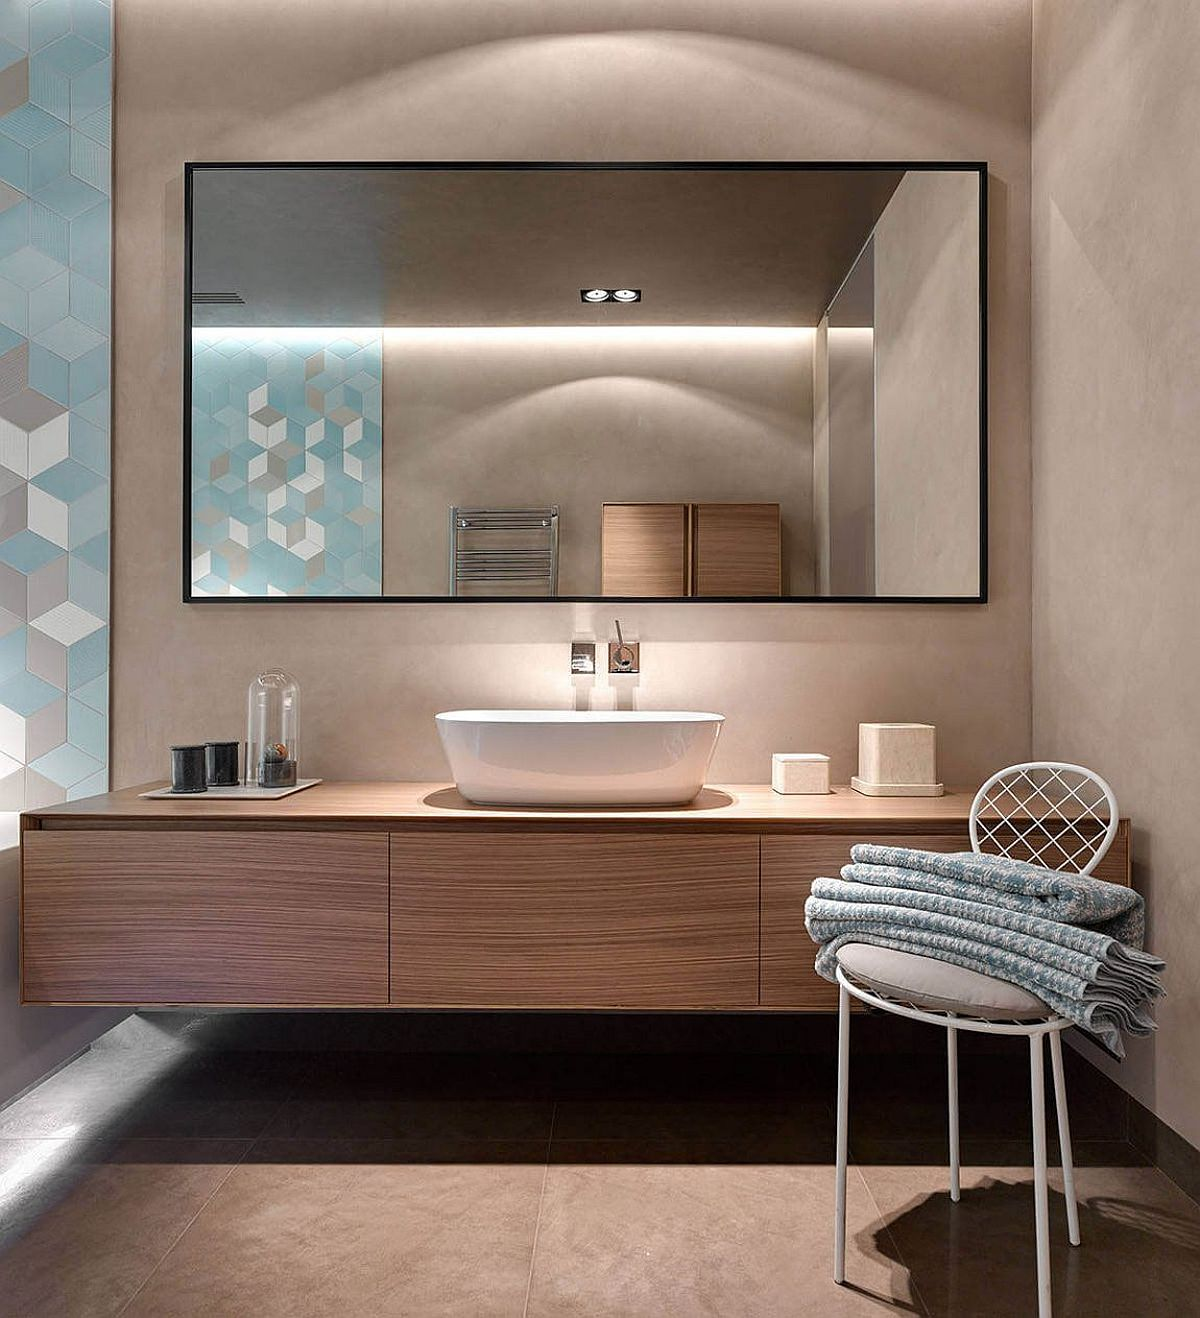 Textured walls and geo tiles for the fashionable modern bathroom